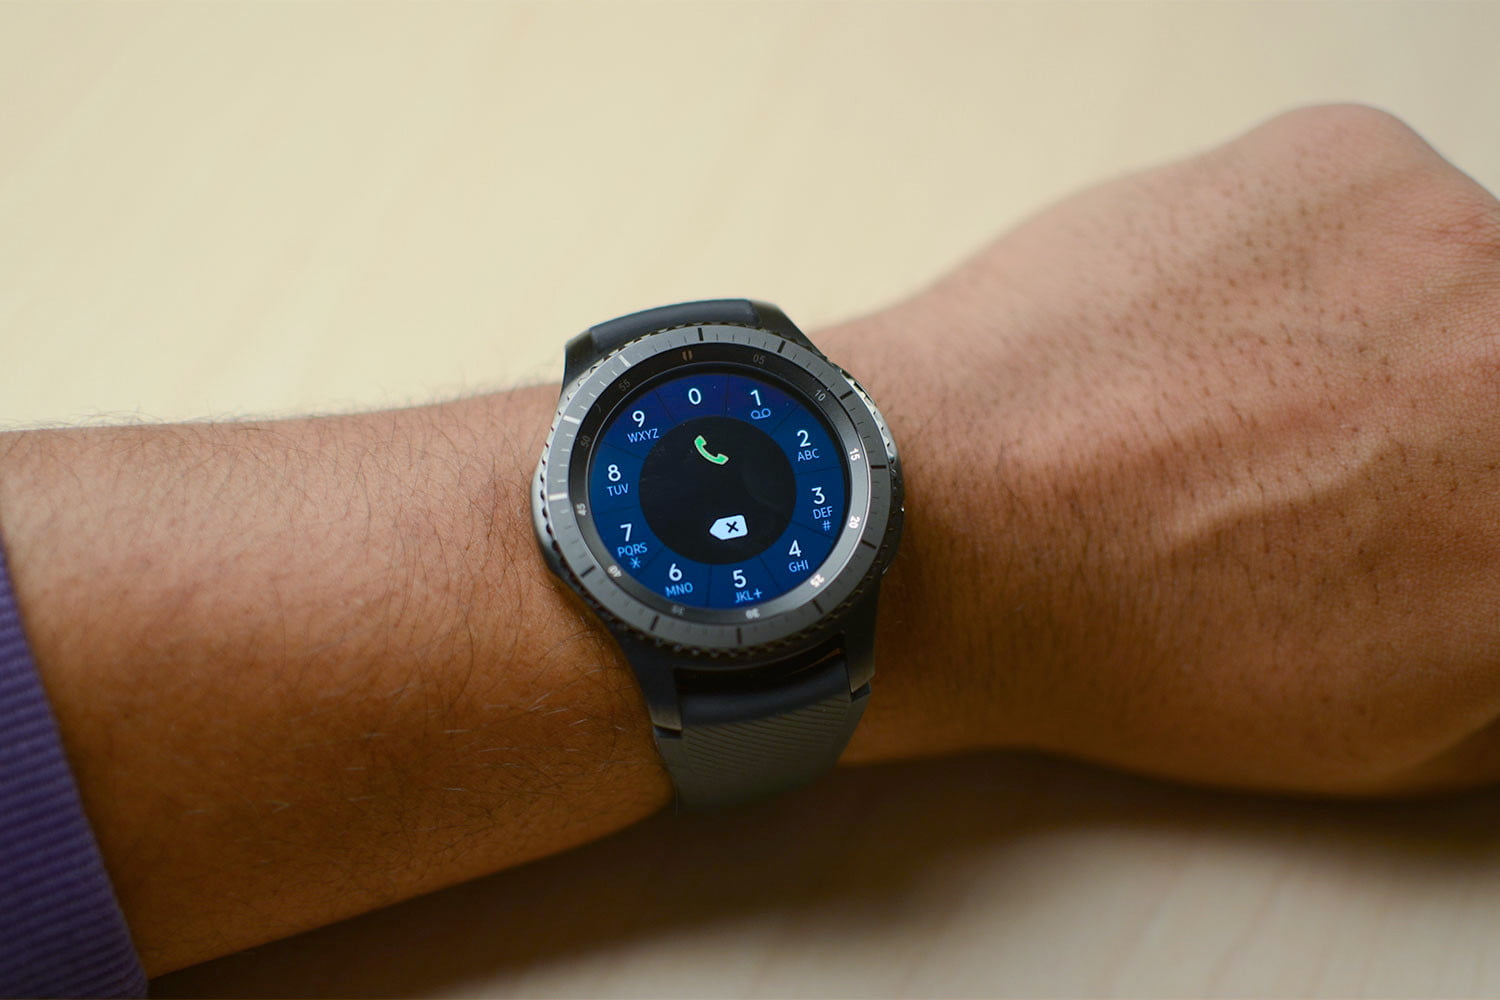 Samsung Gear S3 Review: A Great Watch for Android Owners ...